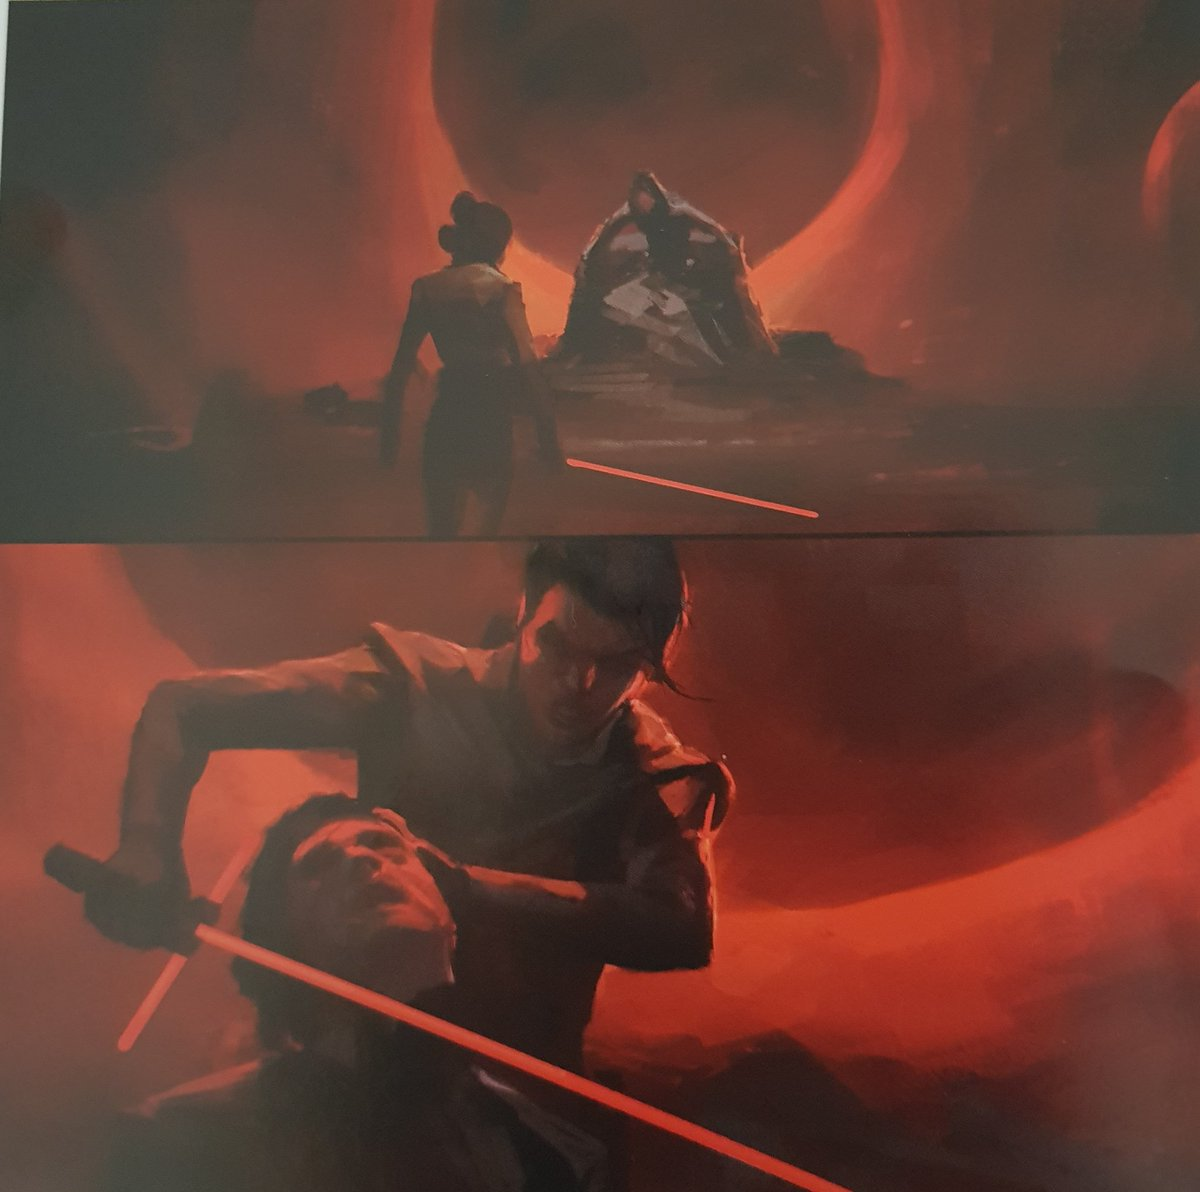 Star Wars The Rise Of Skywalker Over 100 Pieces Of Concept Art Have Leaked Online Showing Unfilmed Scenes